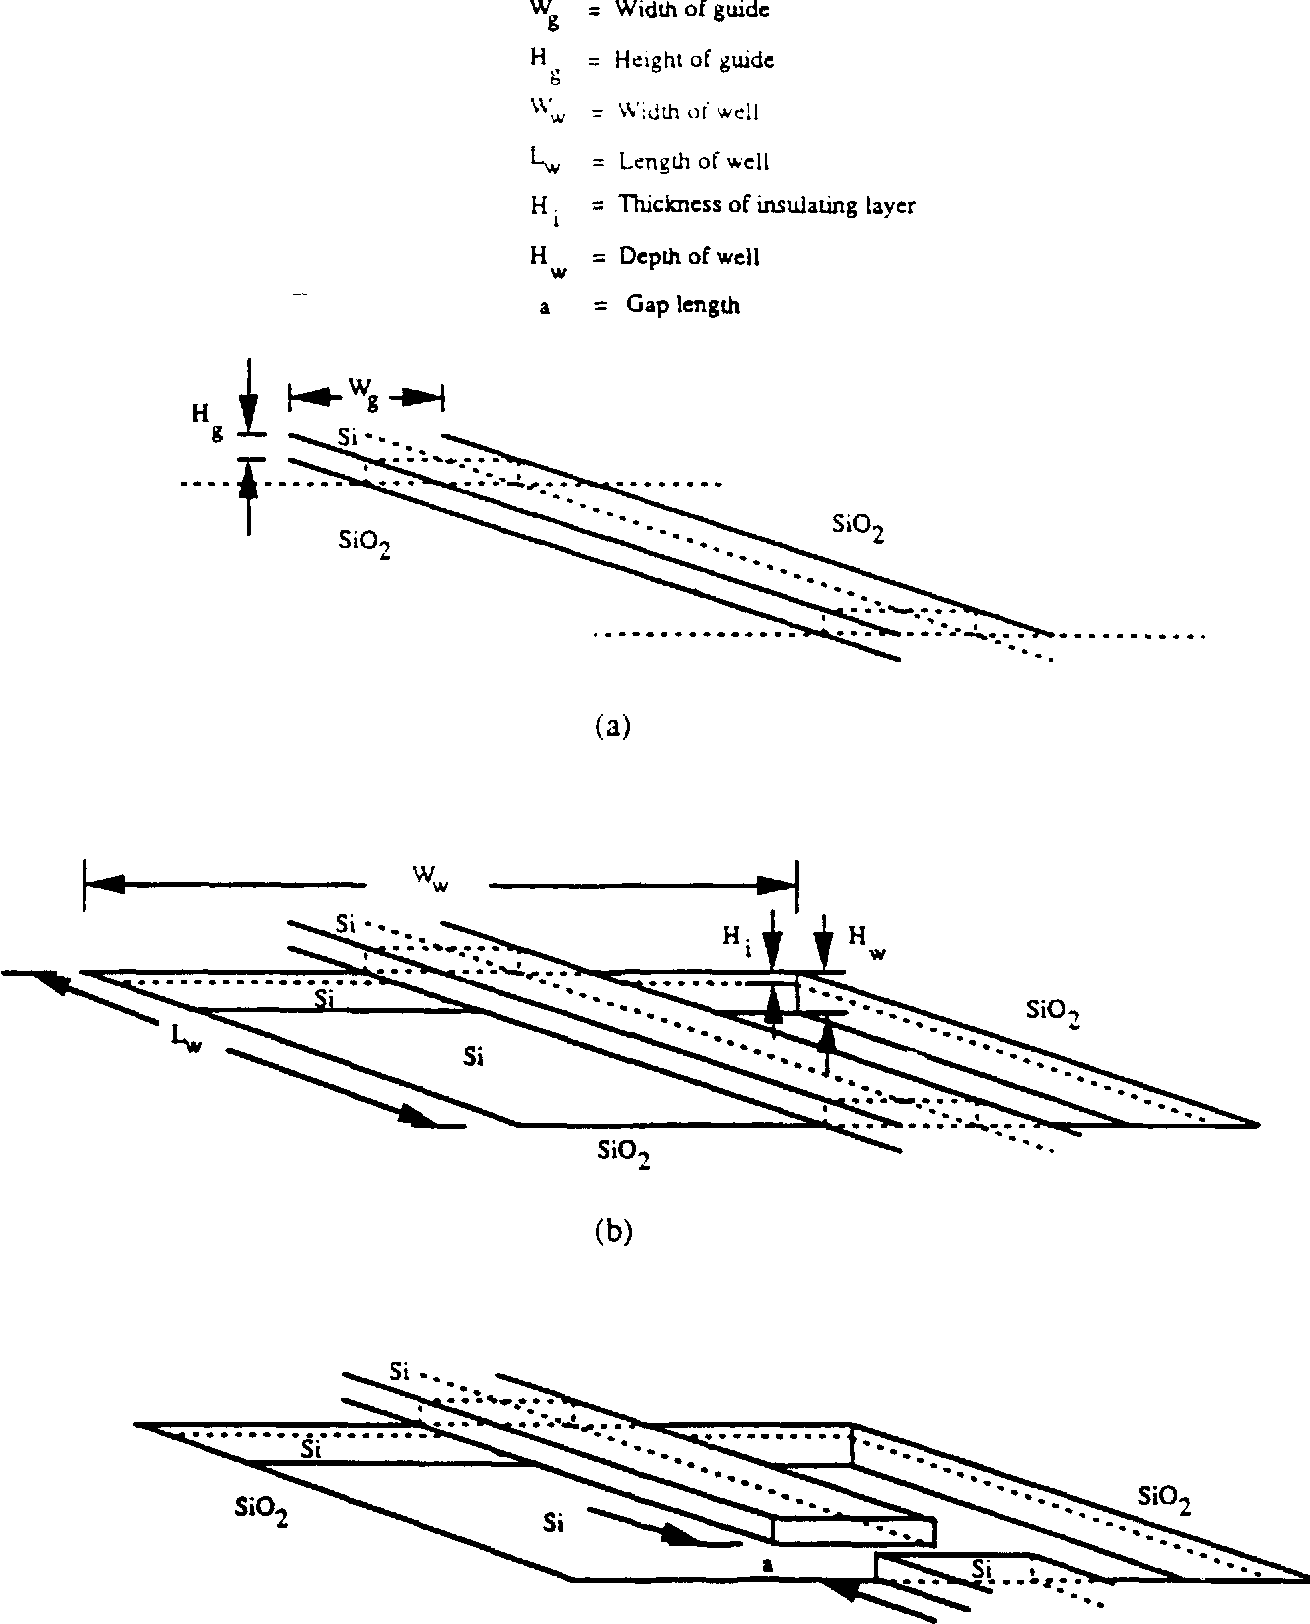 Figure 3.1 Basic EMO device structures: (a) Simple raised strip channel guide, (b) Micro-bridge and (c) Cantilever beam